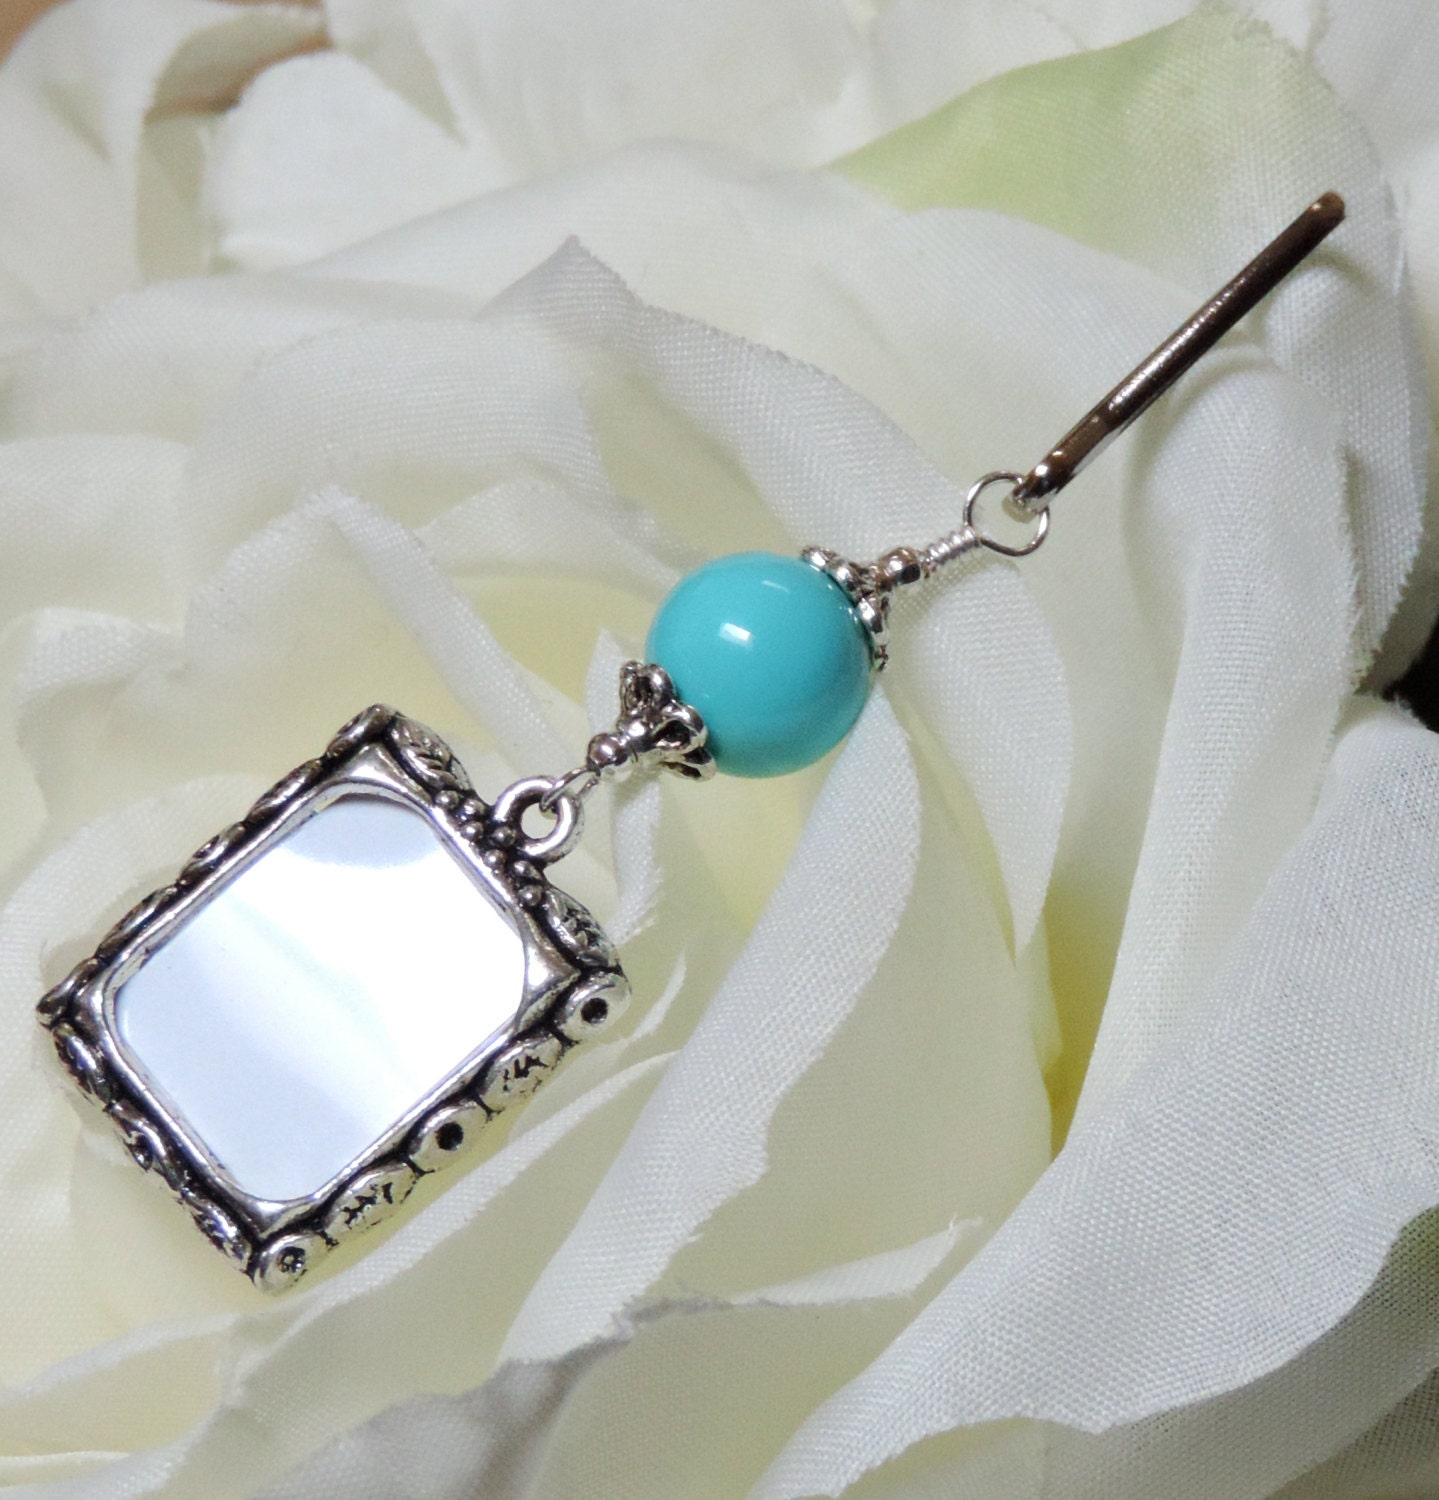 Blue Bridal Bouquet Charm : Wedding bouquet photo charm sky blue something for the